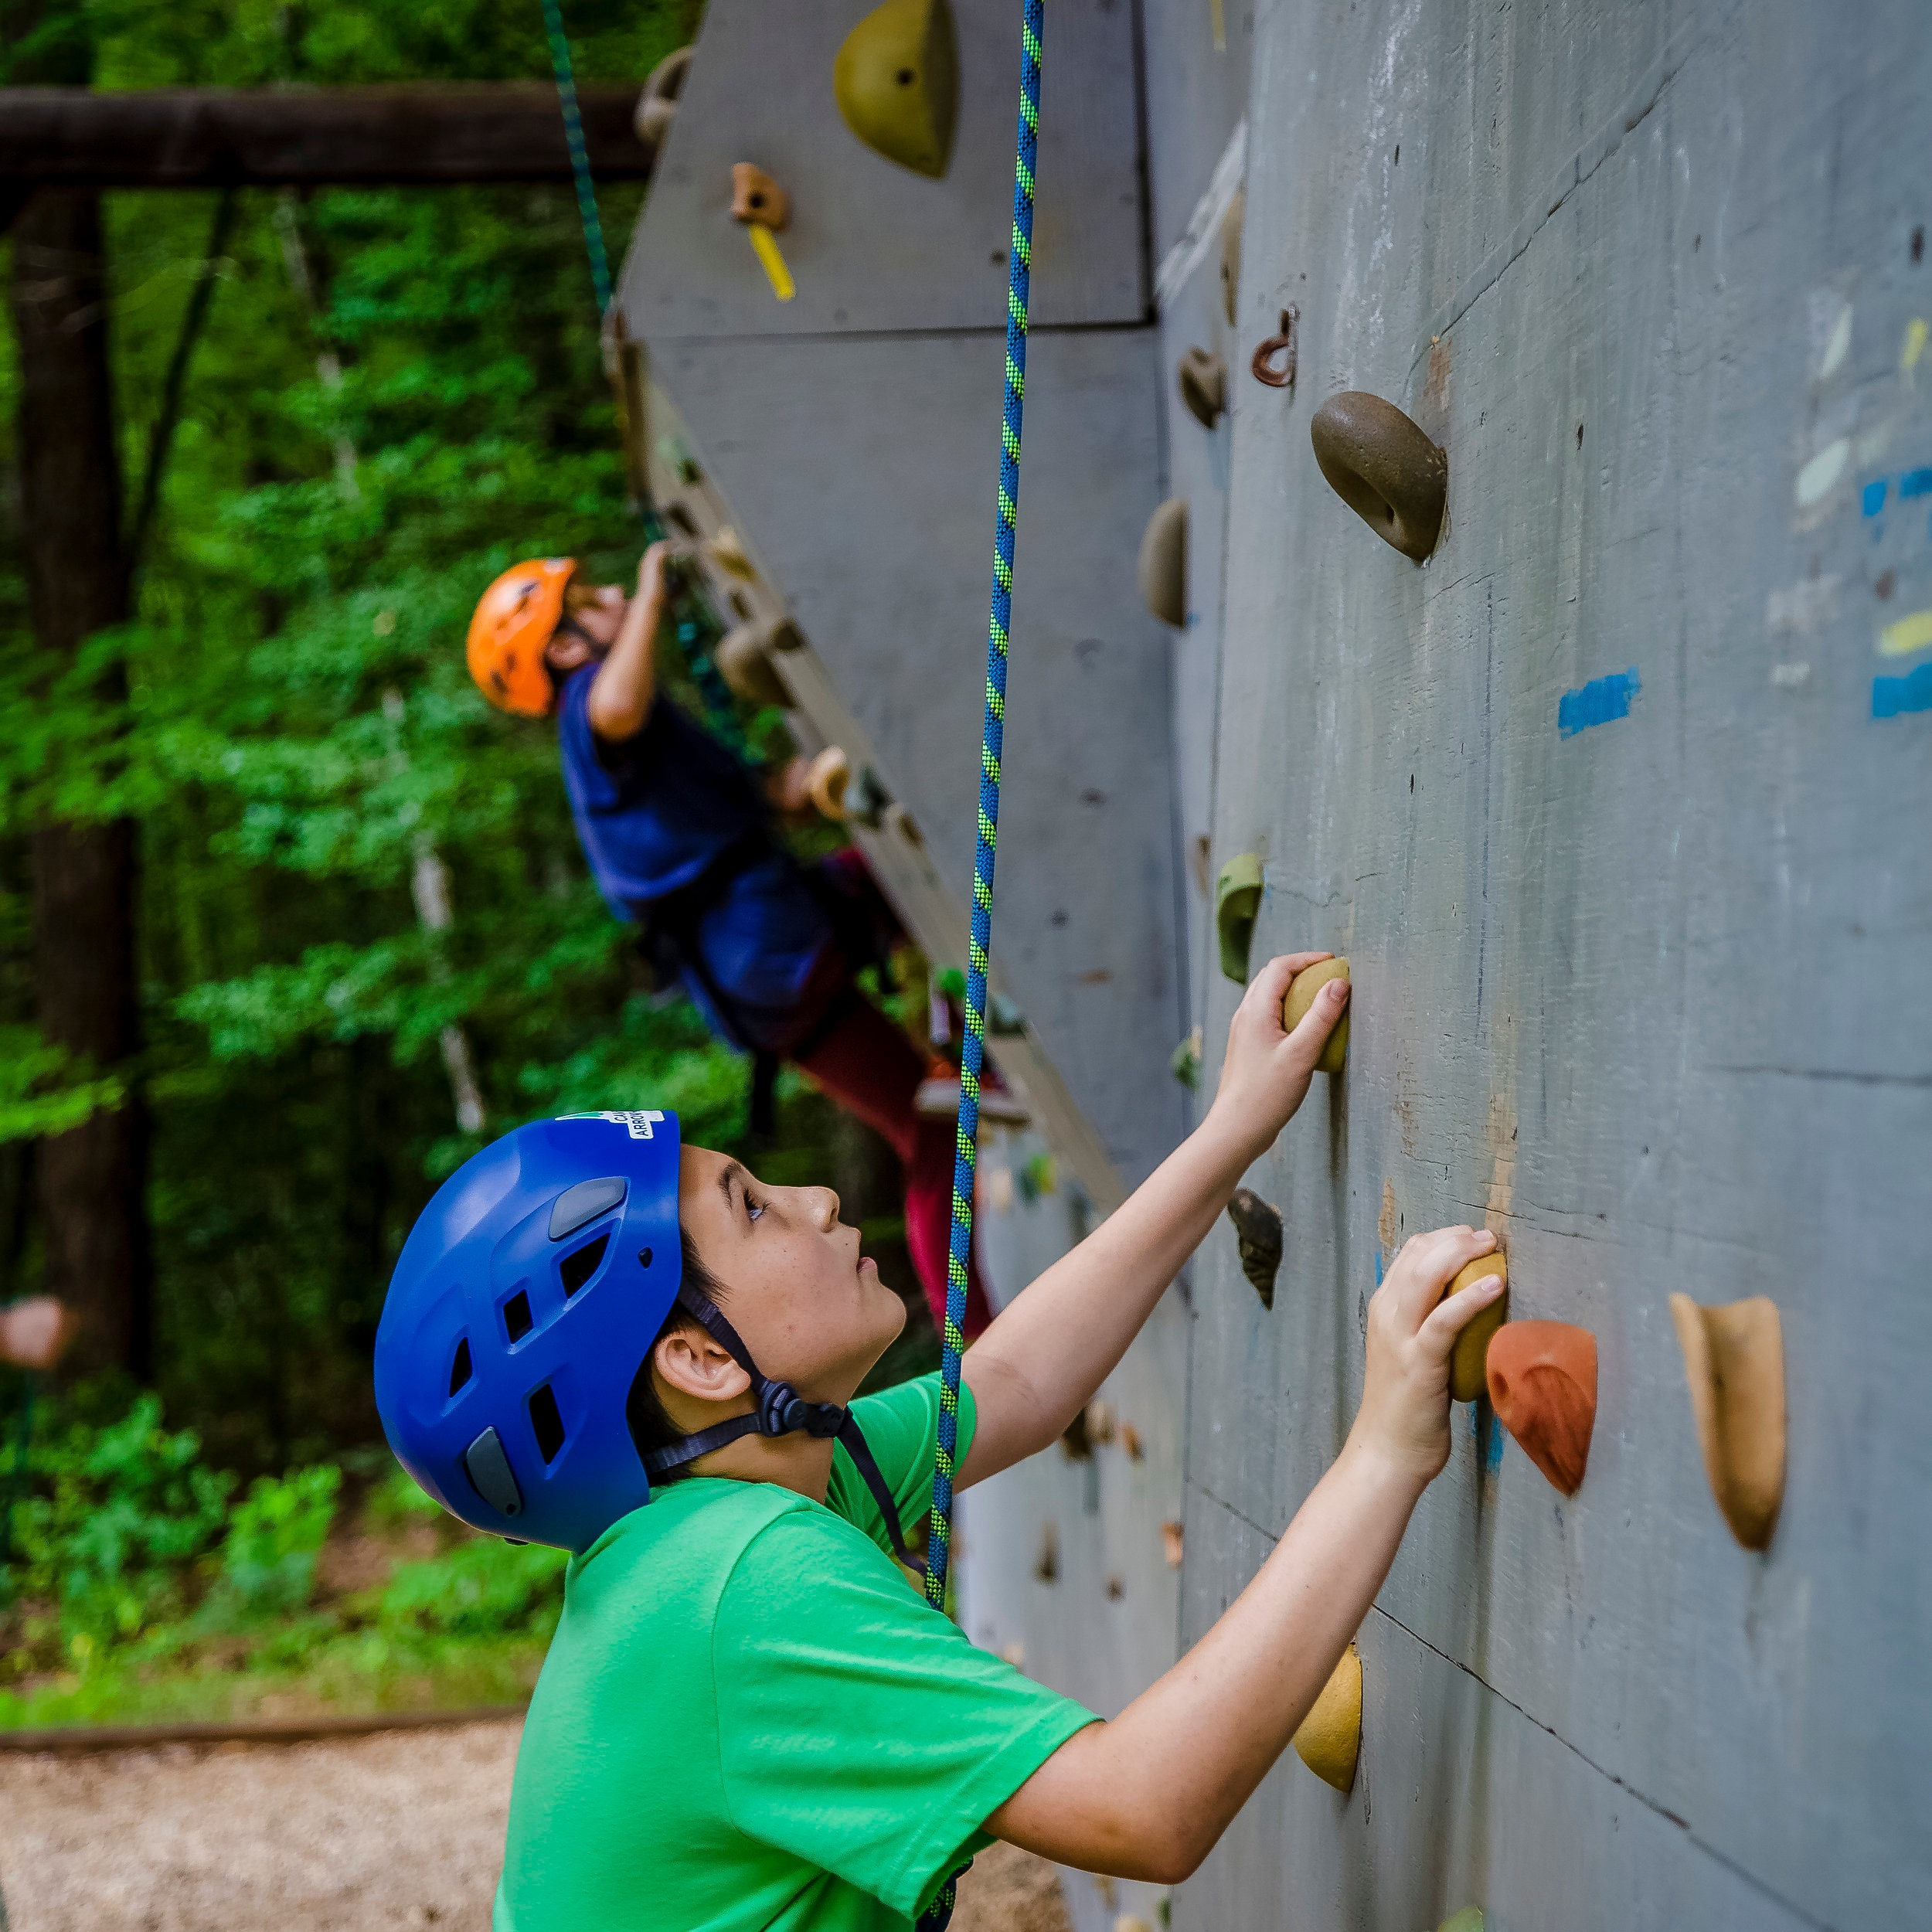 Climbing Wall - With a roof overhead, boys can climb the wall at Arrowhead rain or shine! Our wall has routes of varying difficulty to learn the basics, prepare for an out-trip, or spend some free time pushing your limits. In addition to climbing skills, boys will learn knots and belaying skills as they work through the climbing progression.